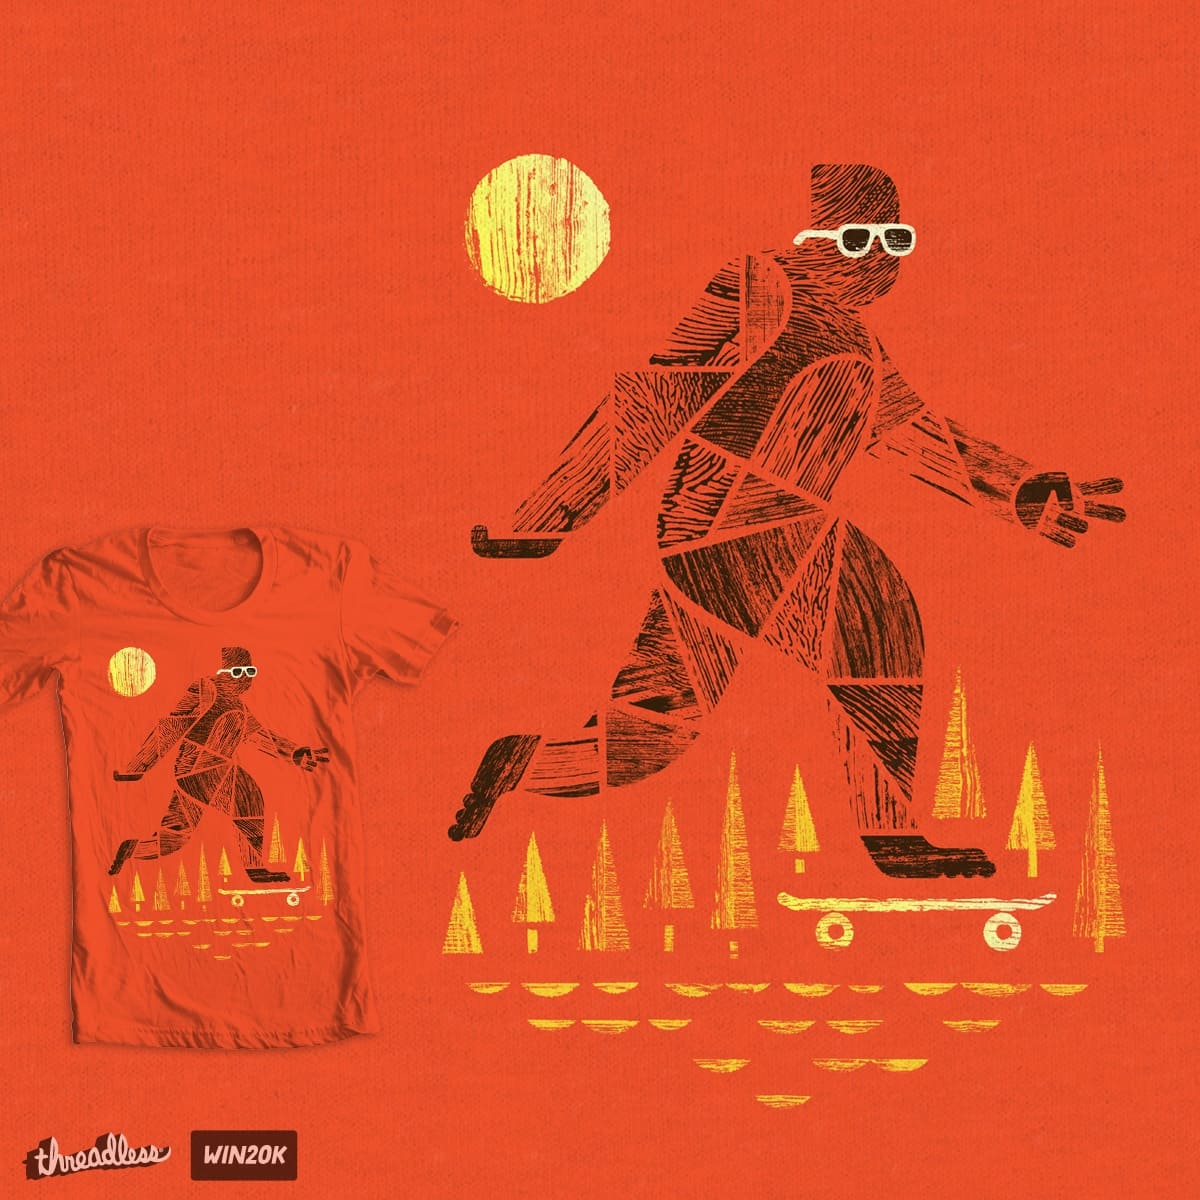 Surefooted by rhinosserossy and wowrainbows on Threadless